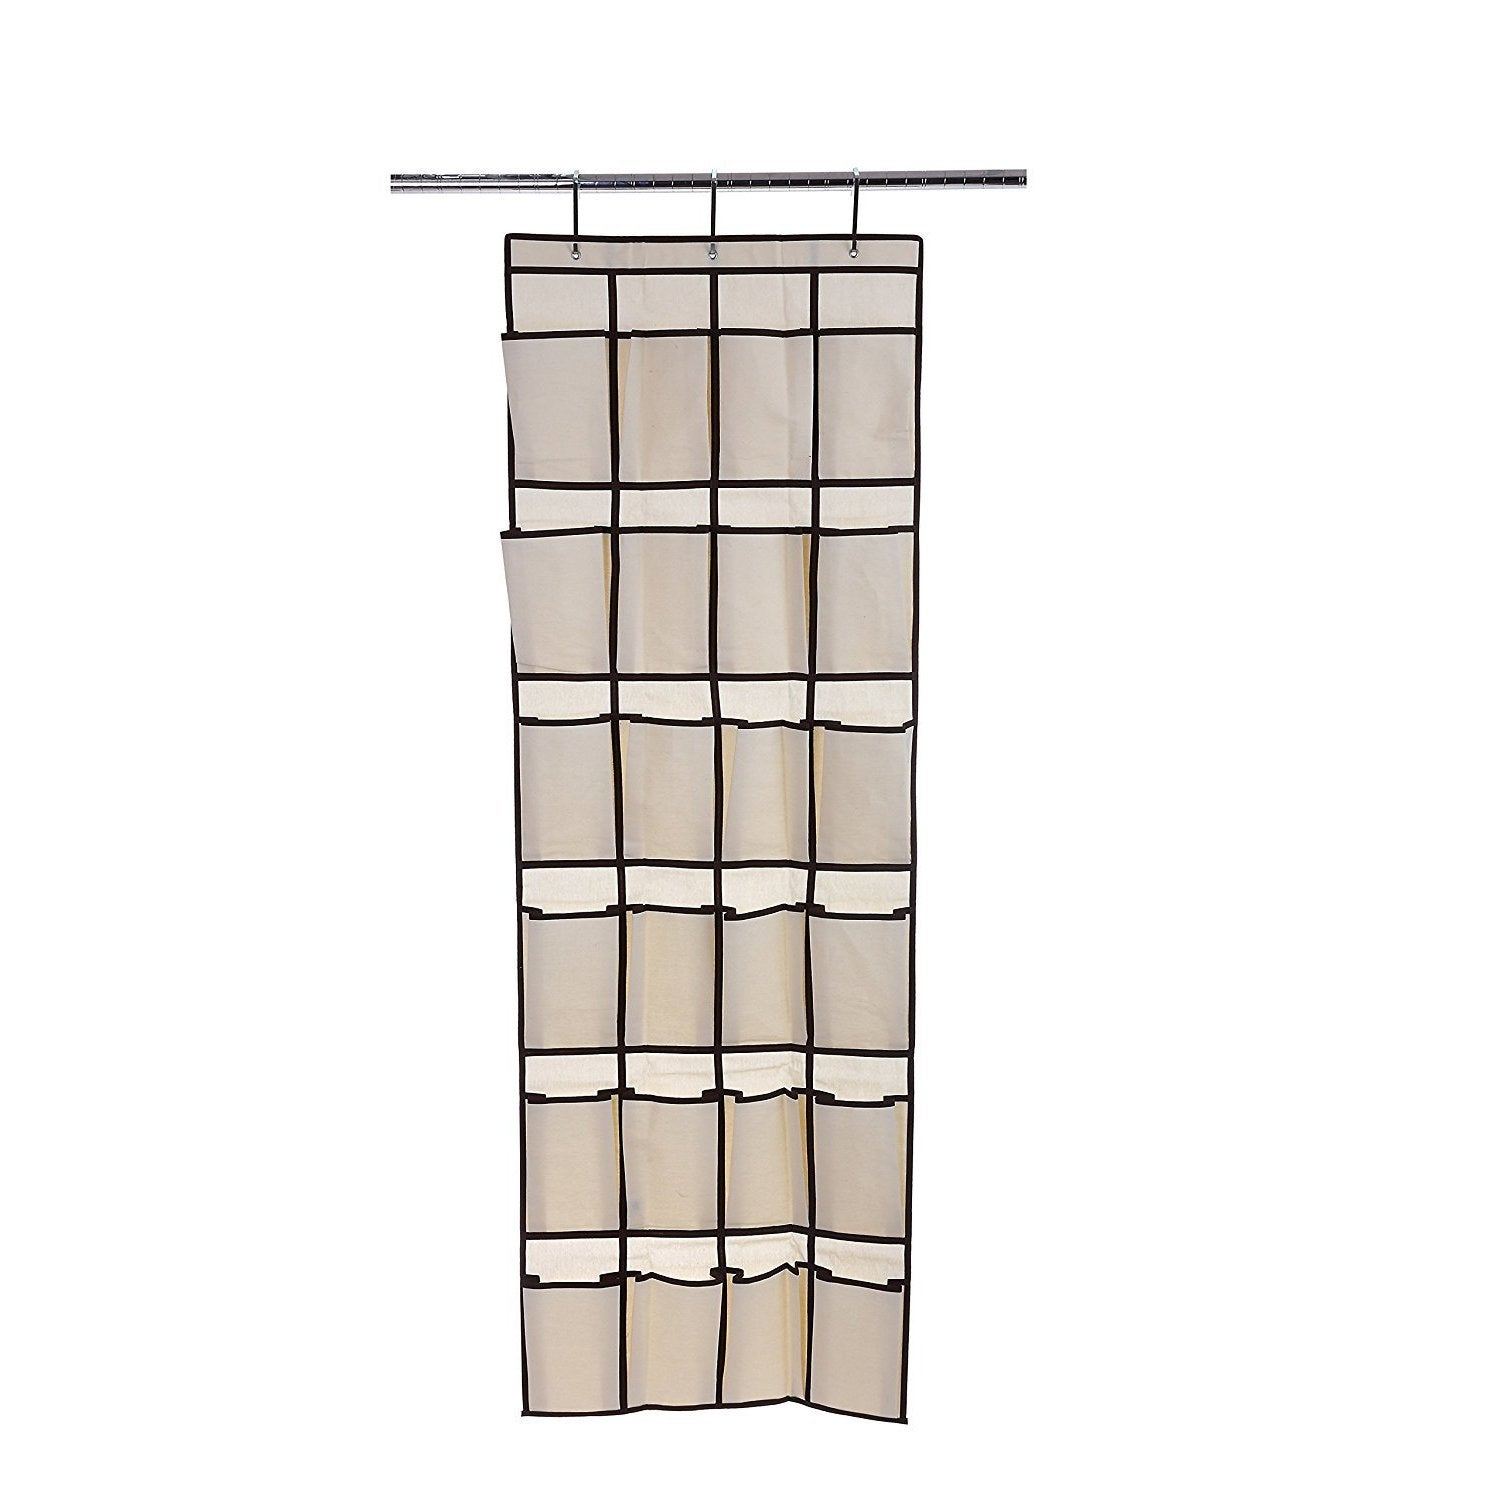 Ybmhome 24 Pocket Fabric Hanging Shoe Organizer 2207 (Siz...